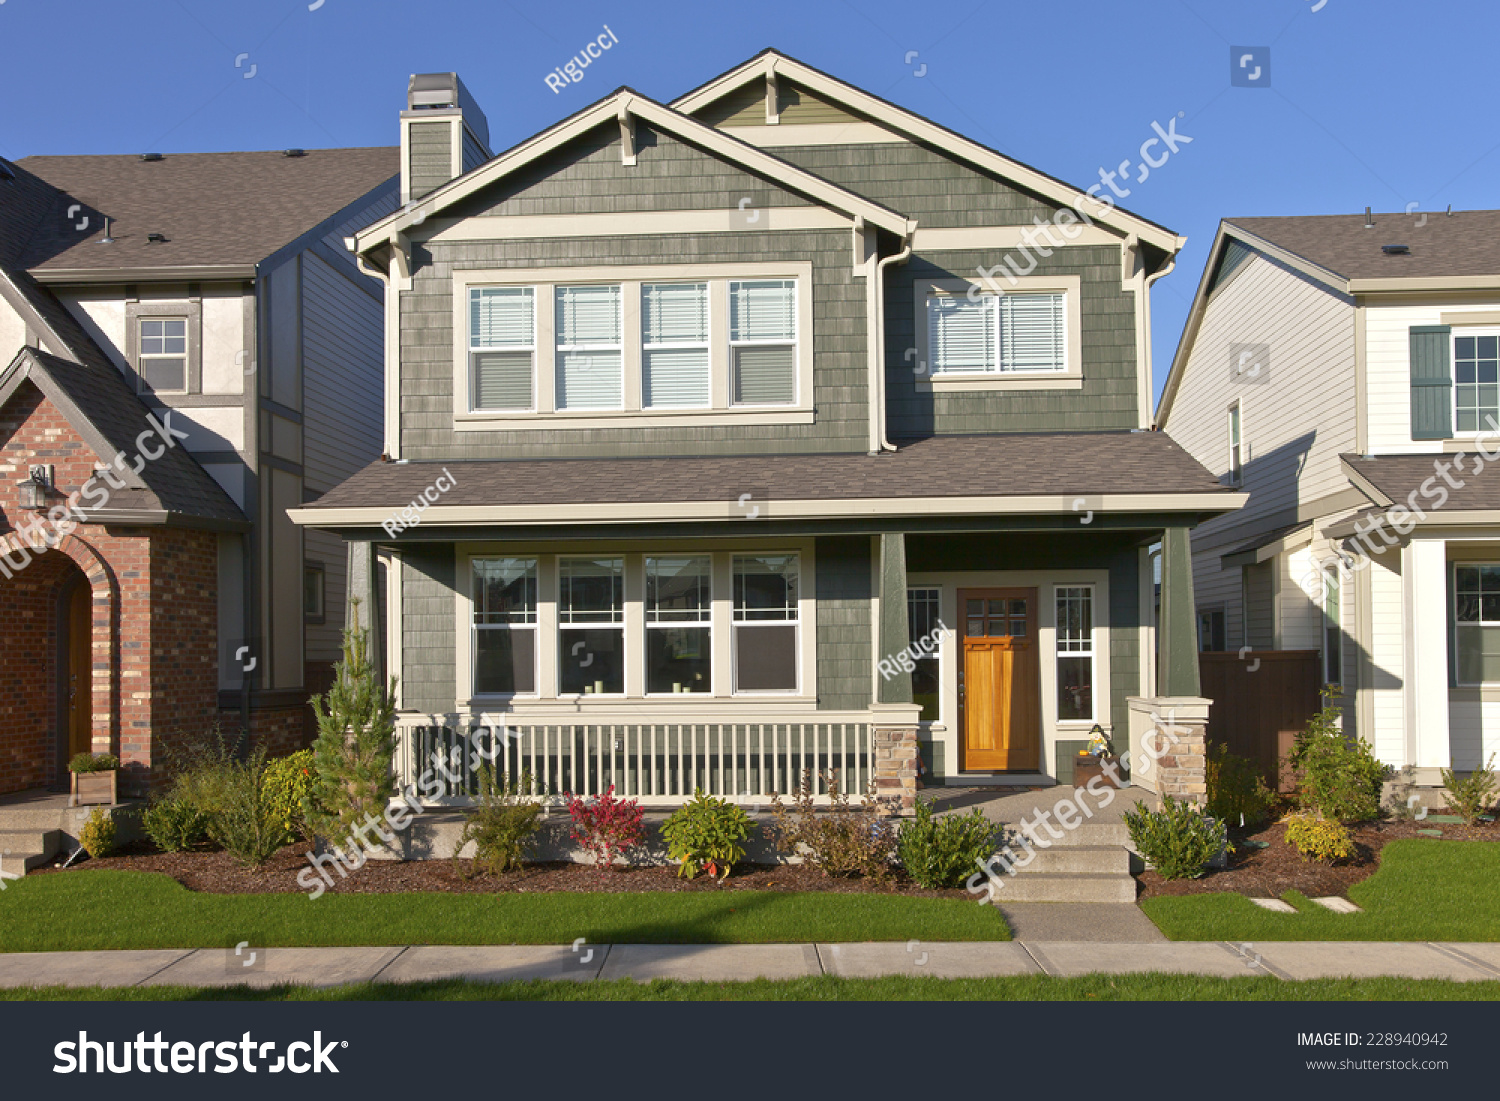 Family home new construction in wilsonville oregon stock for Building a house in oregon